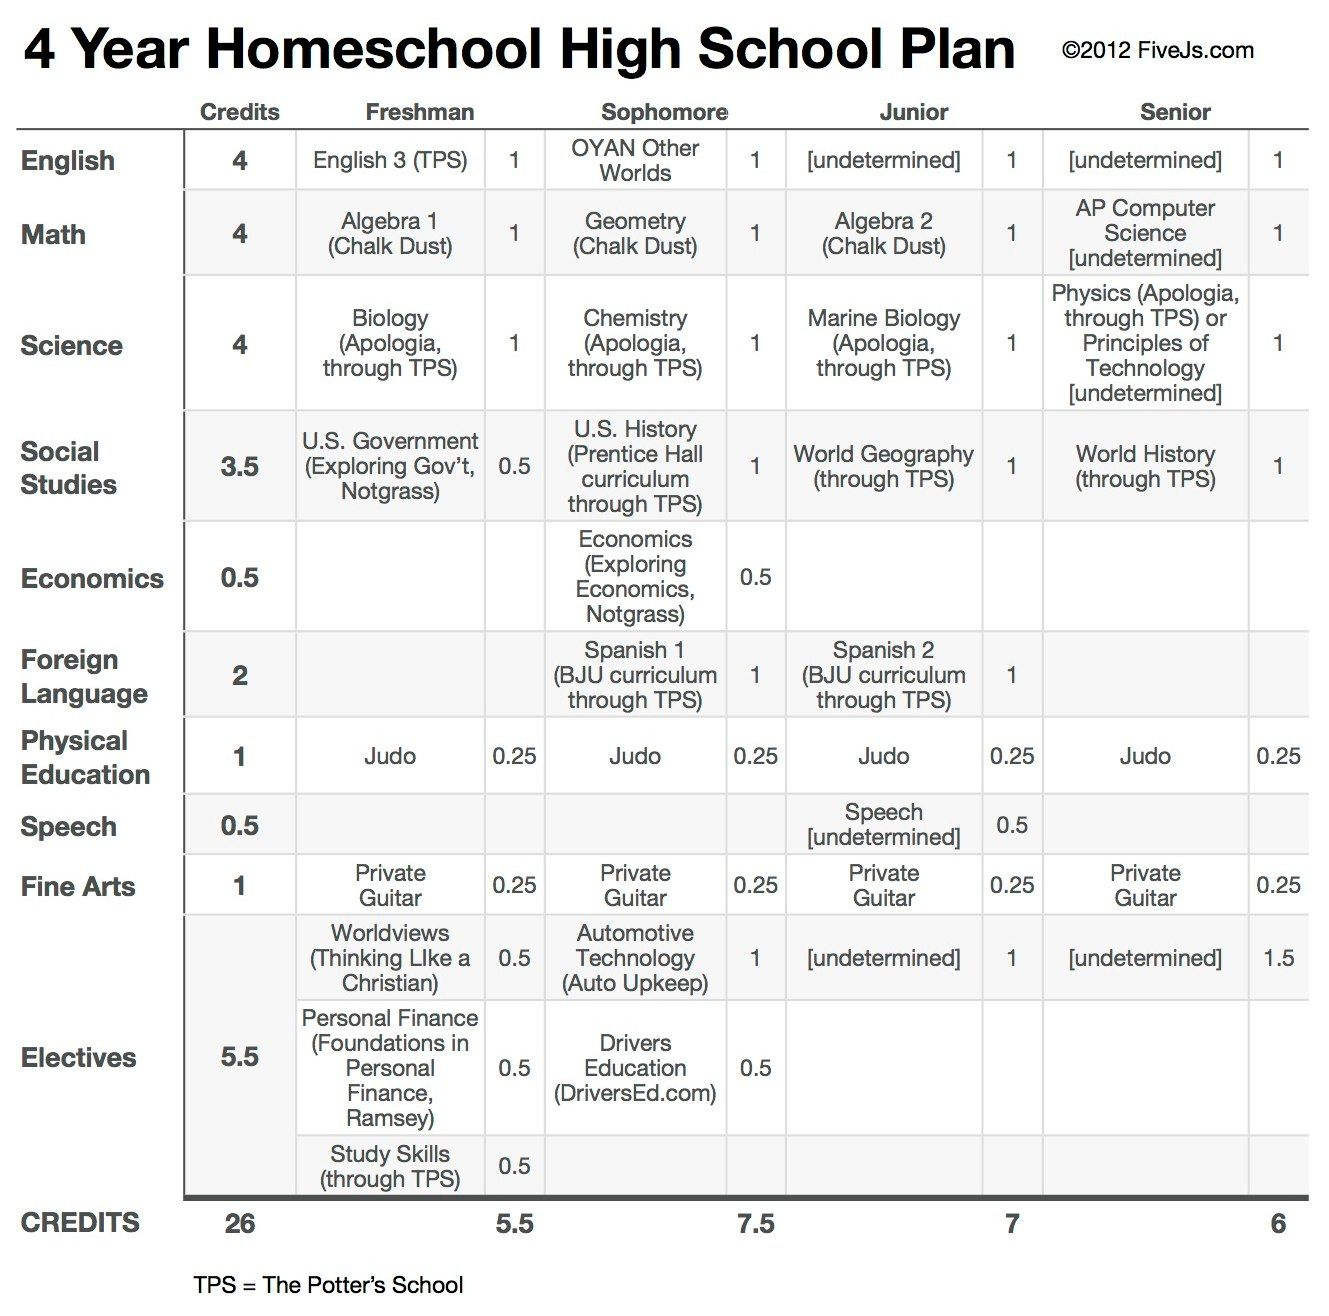 Printables Homeschool Worksheets High School 1000 images about homeschool high school on pinterest student centered resources decimal and courses